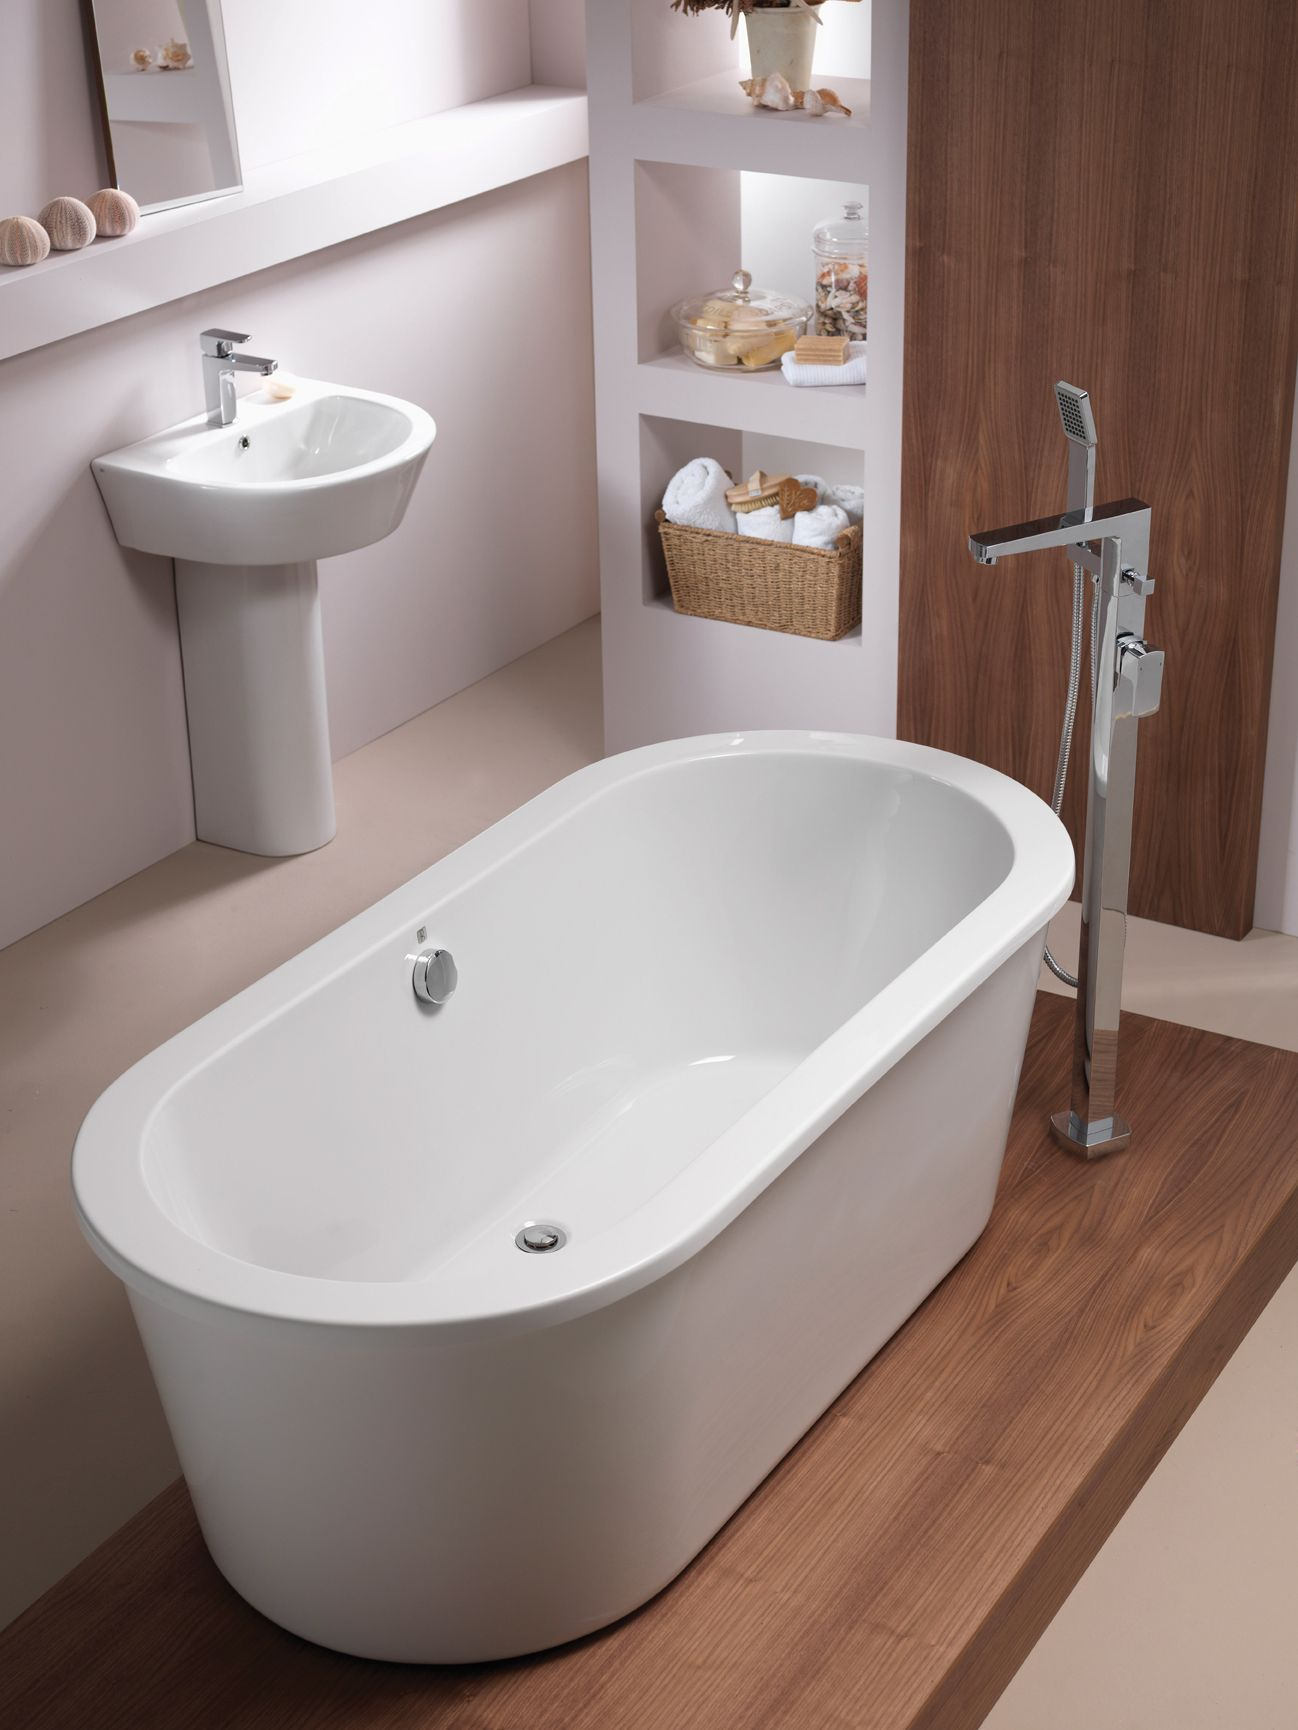 Freestanding Bath Taps How To Choose The Best Freestanding Bath For Your Bathroom